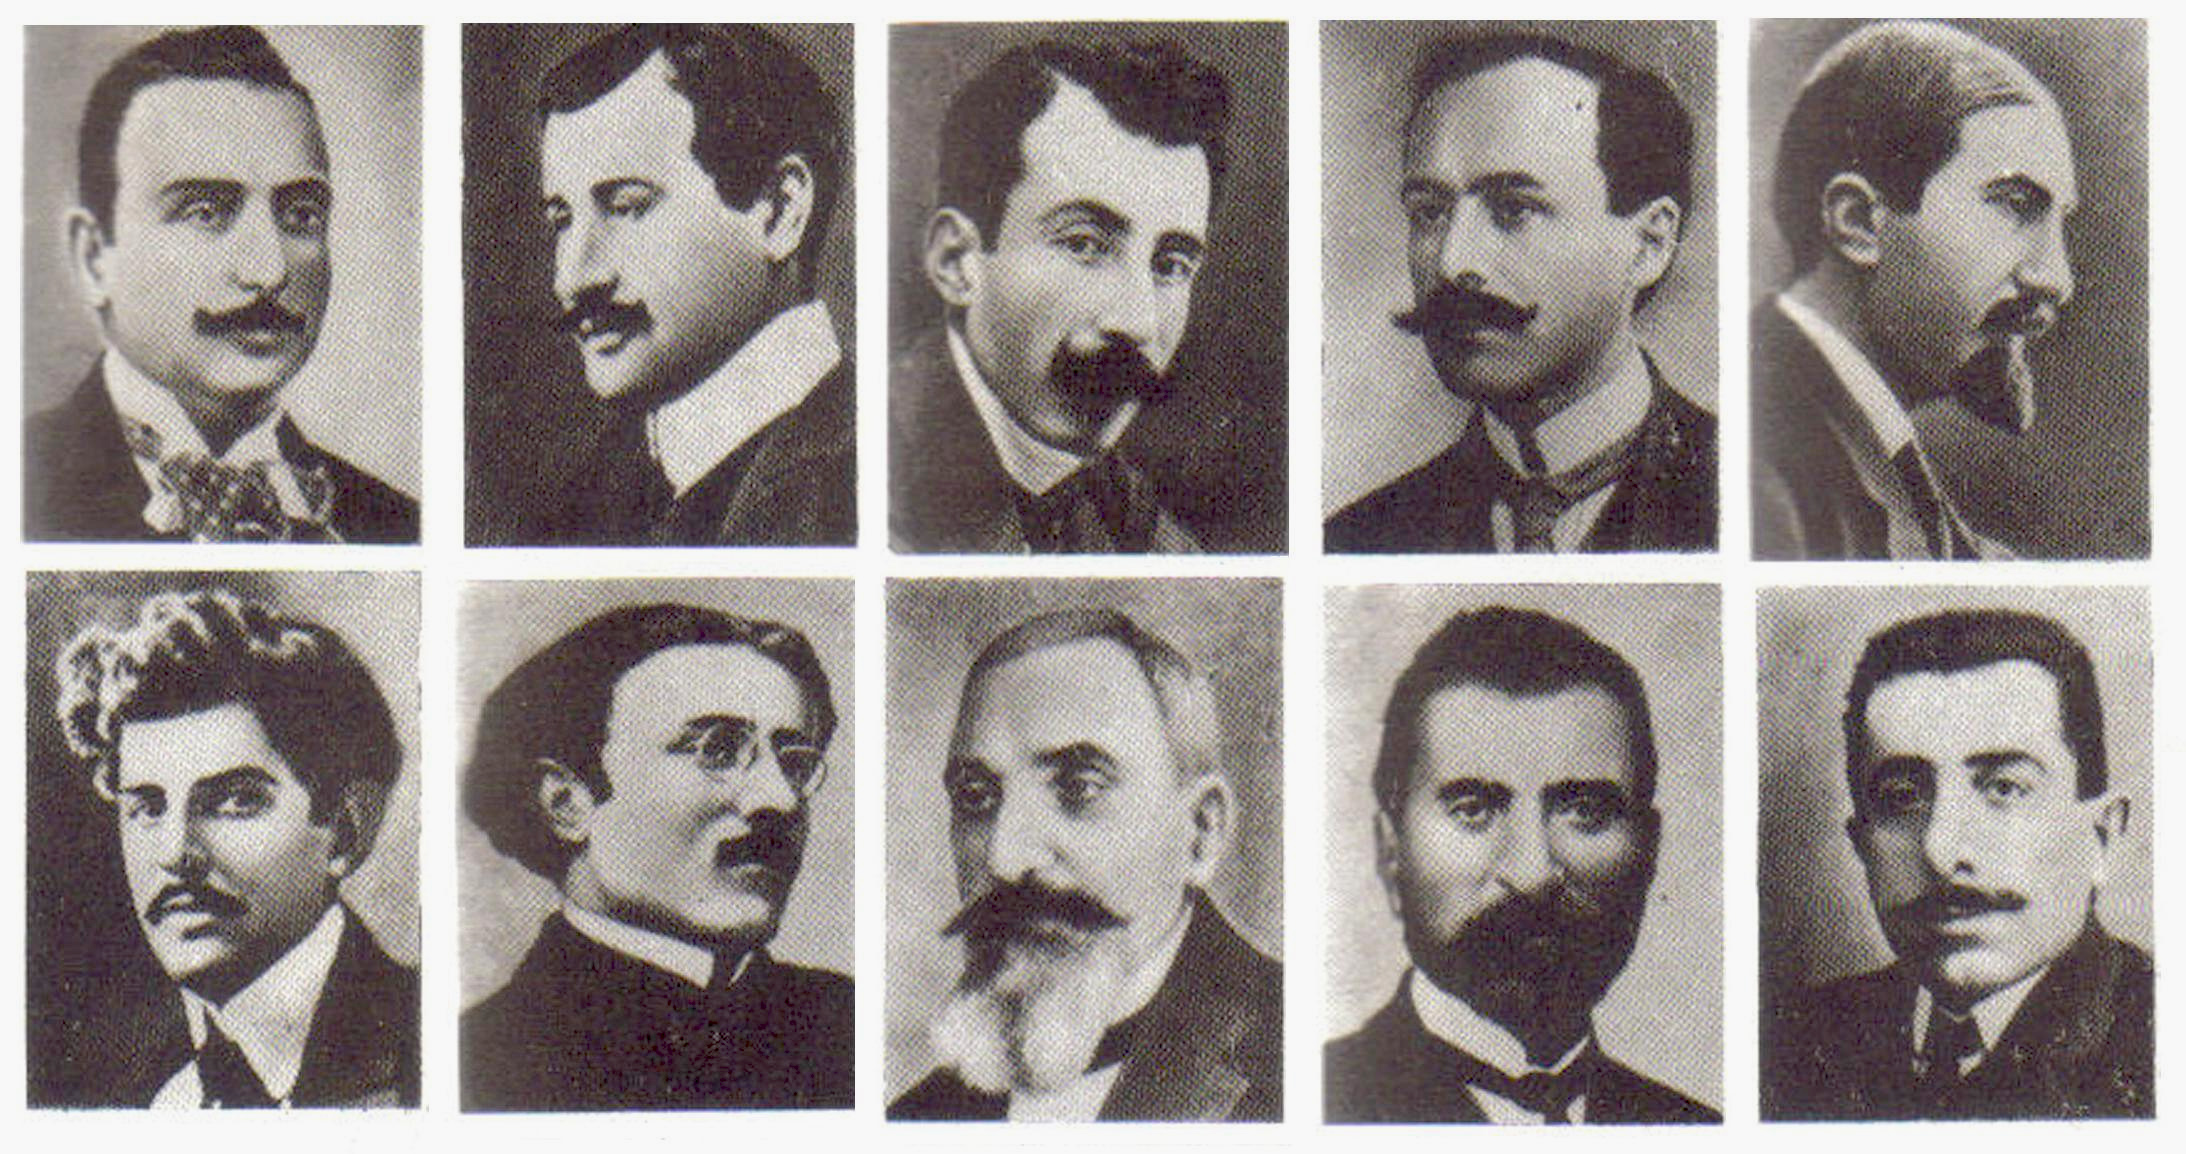 Deportation of Armenian intellectuals on 24 April 1915